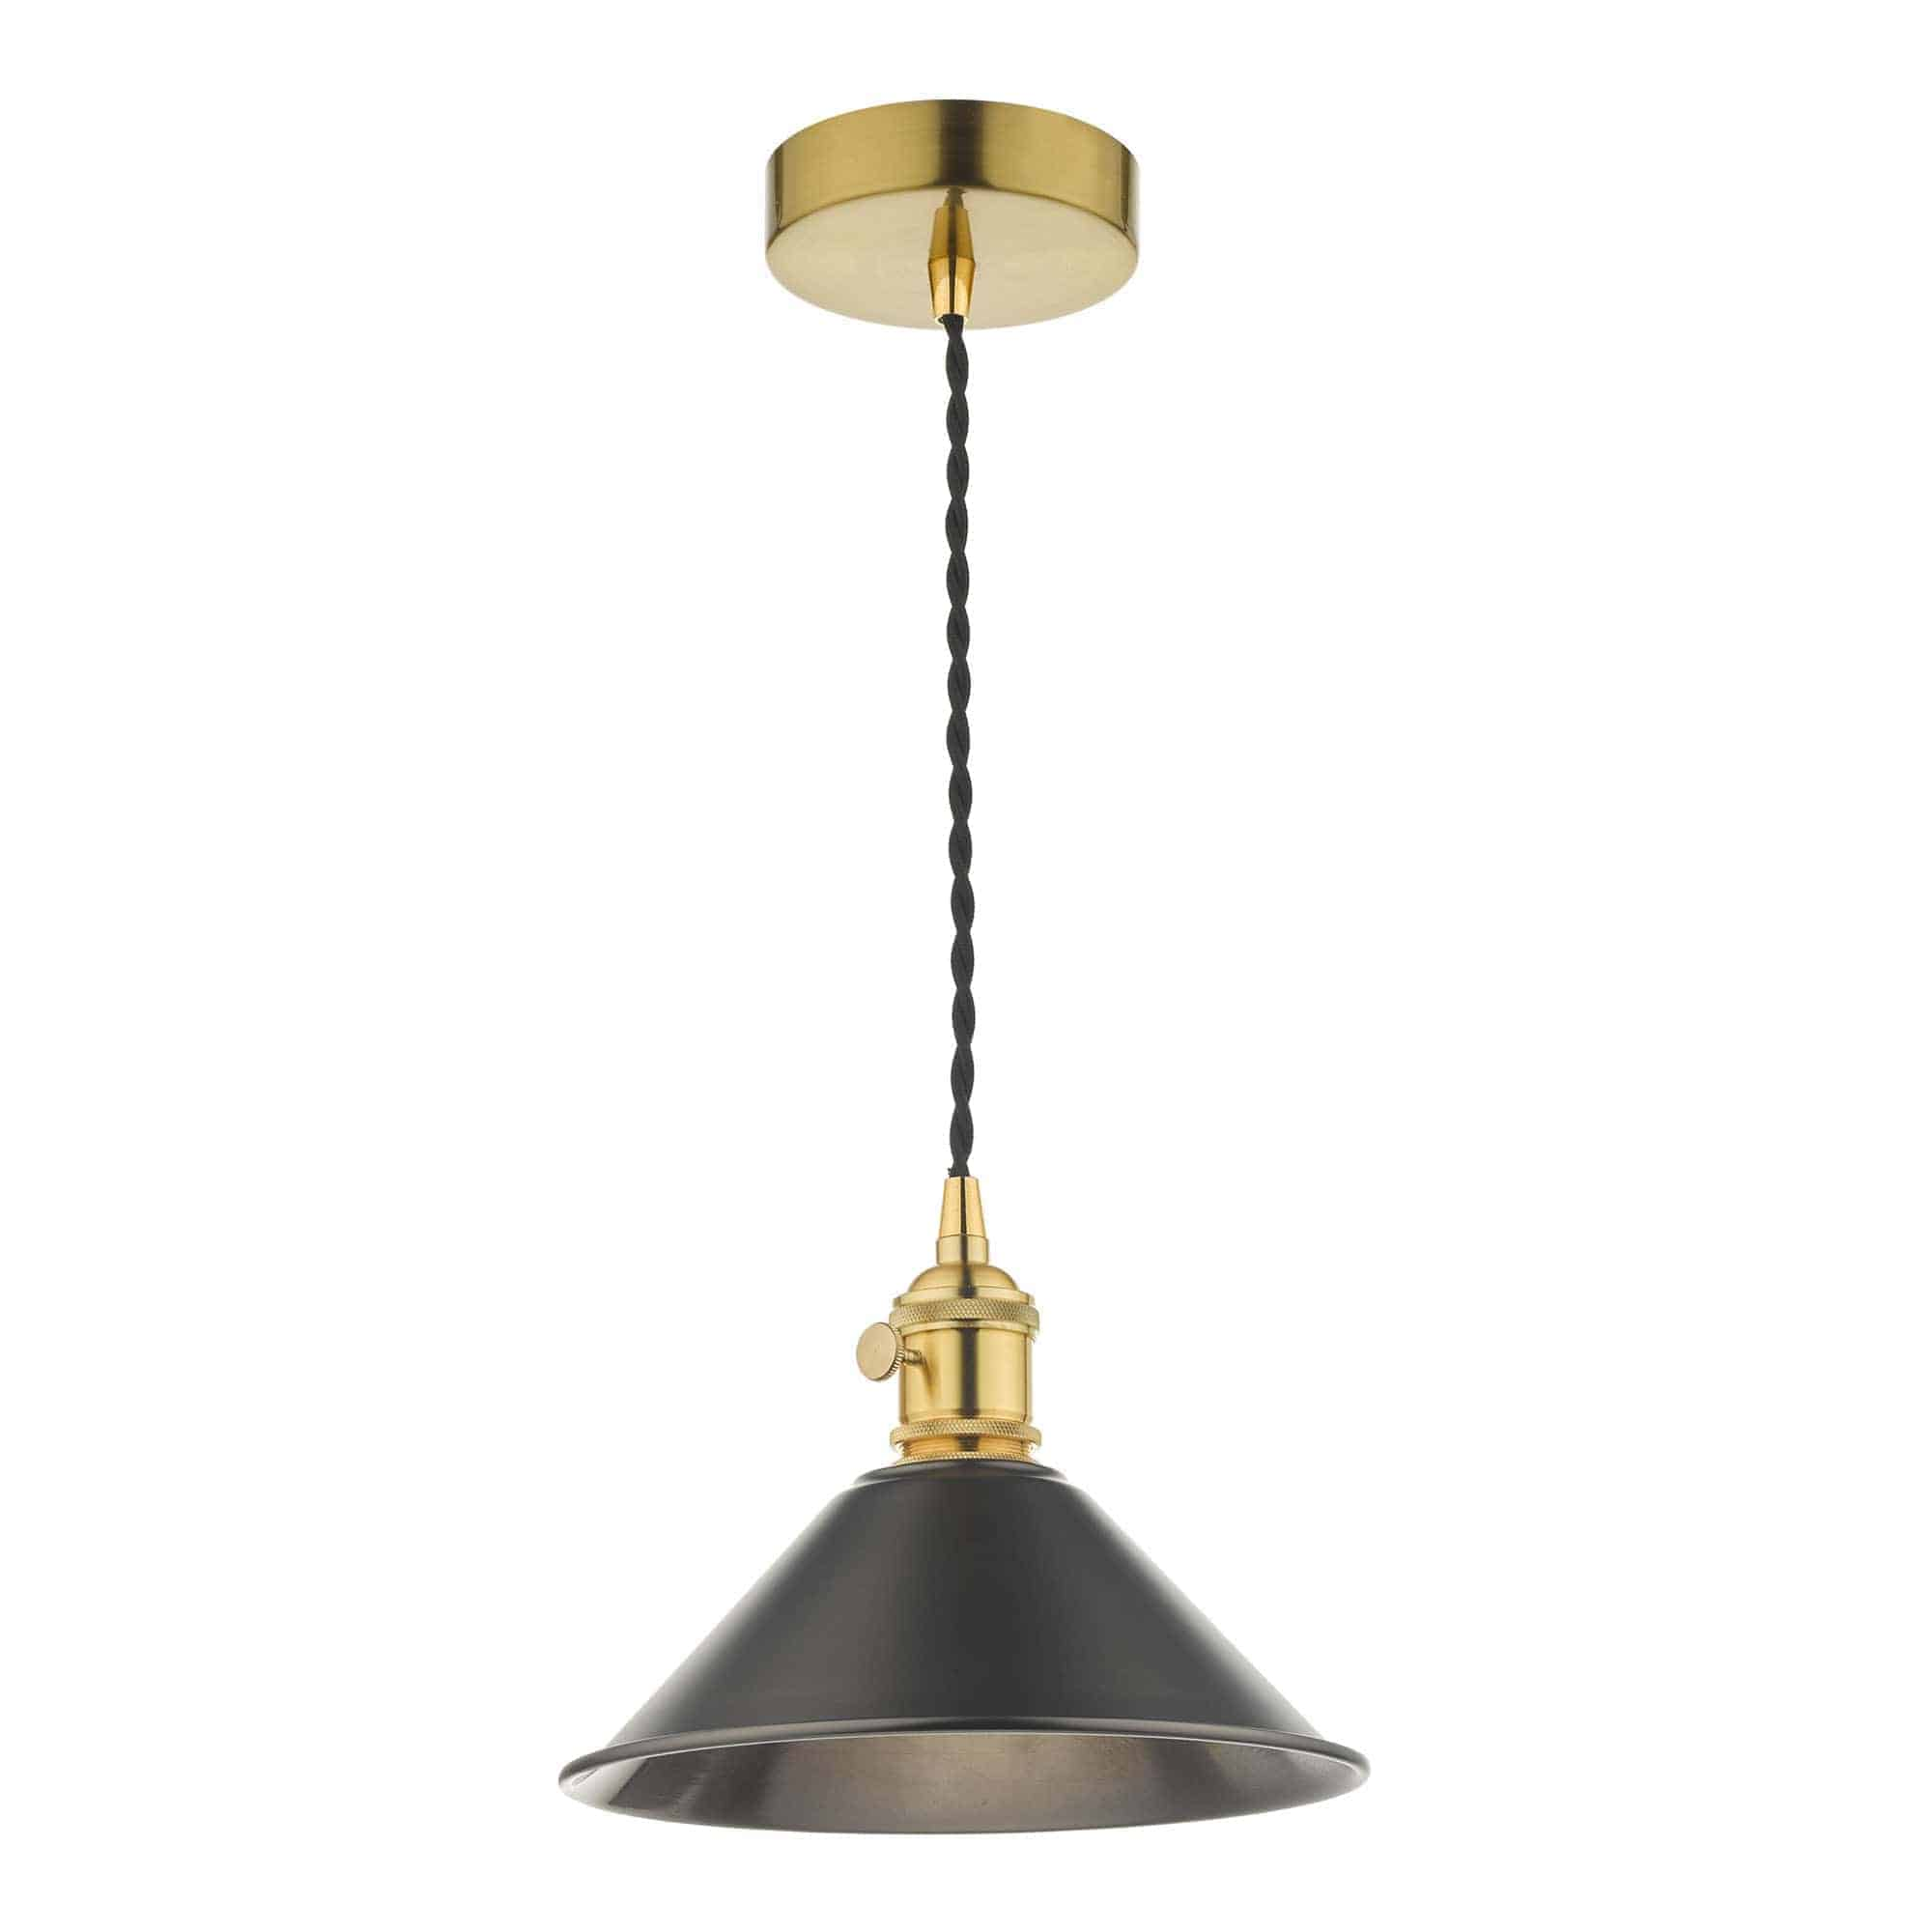 Dar HAD0140-02 Hadano 1 Light Pendant Natural Brass With Antique Pewter Shade